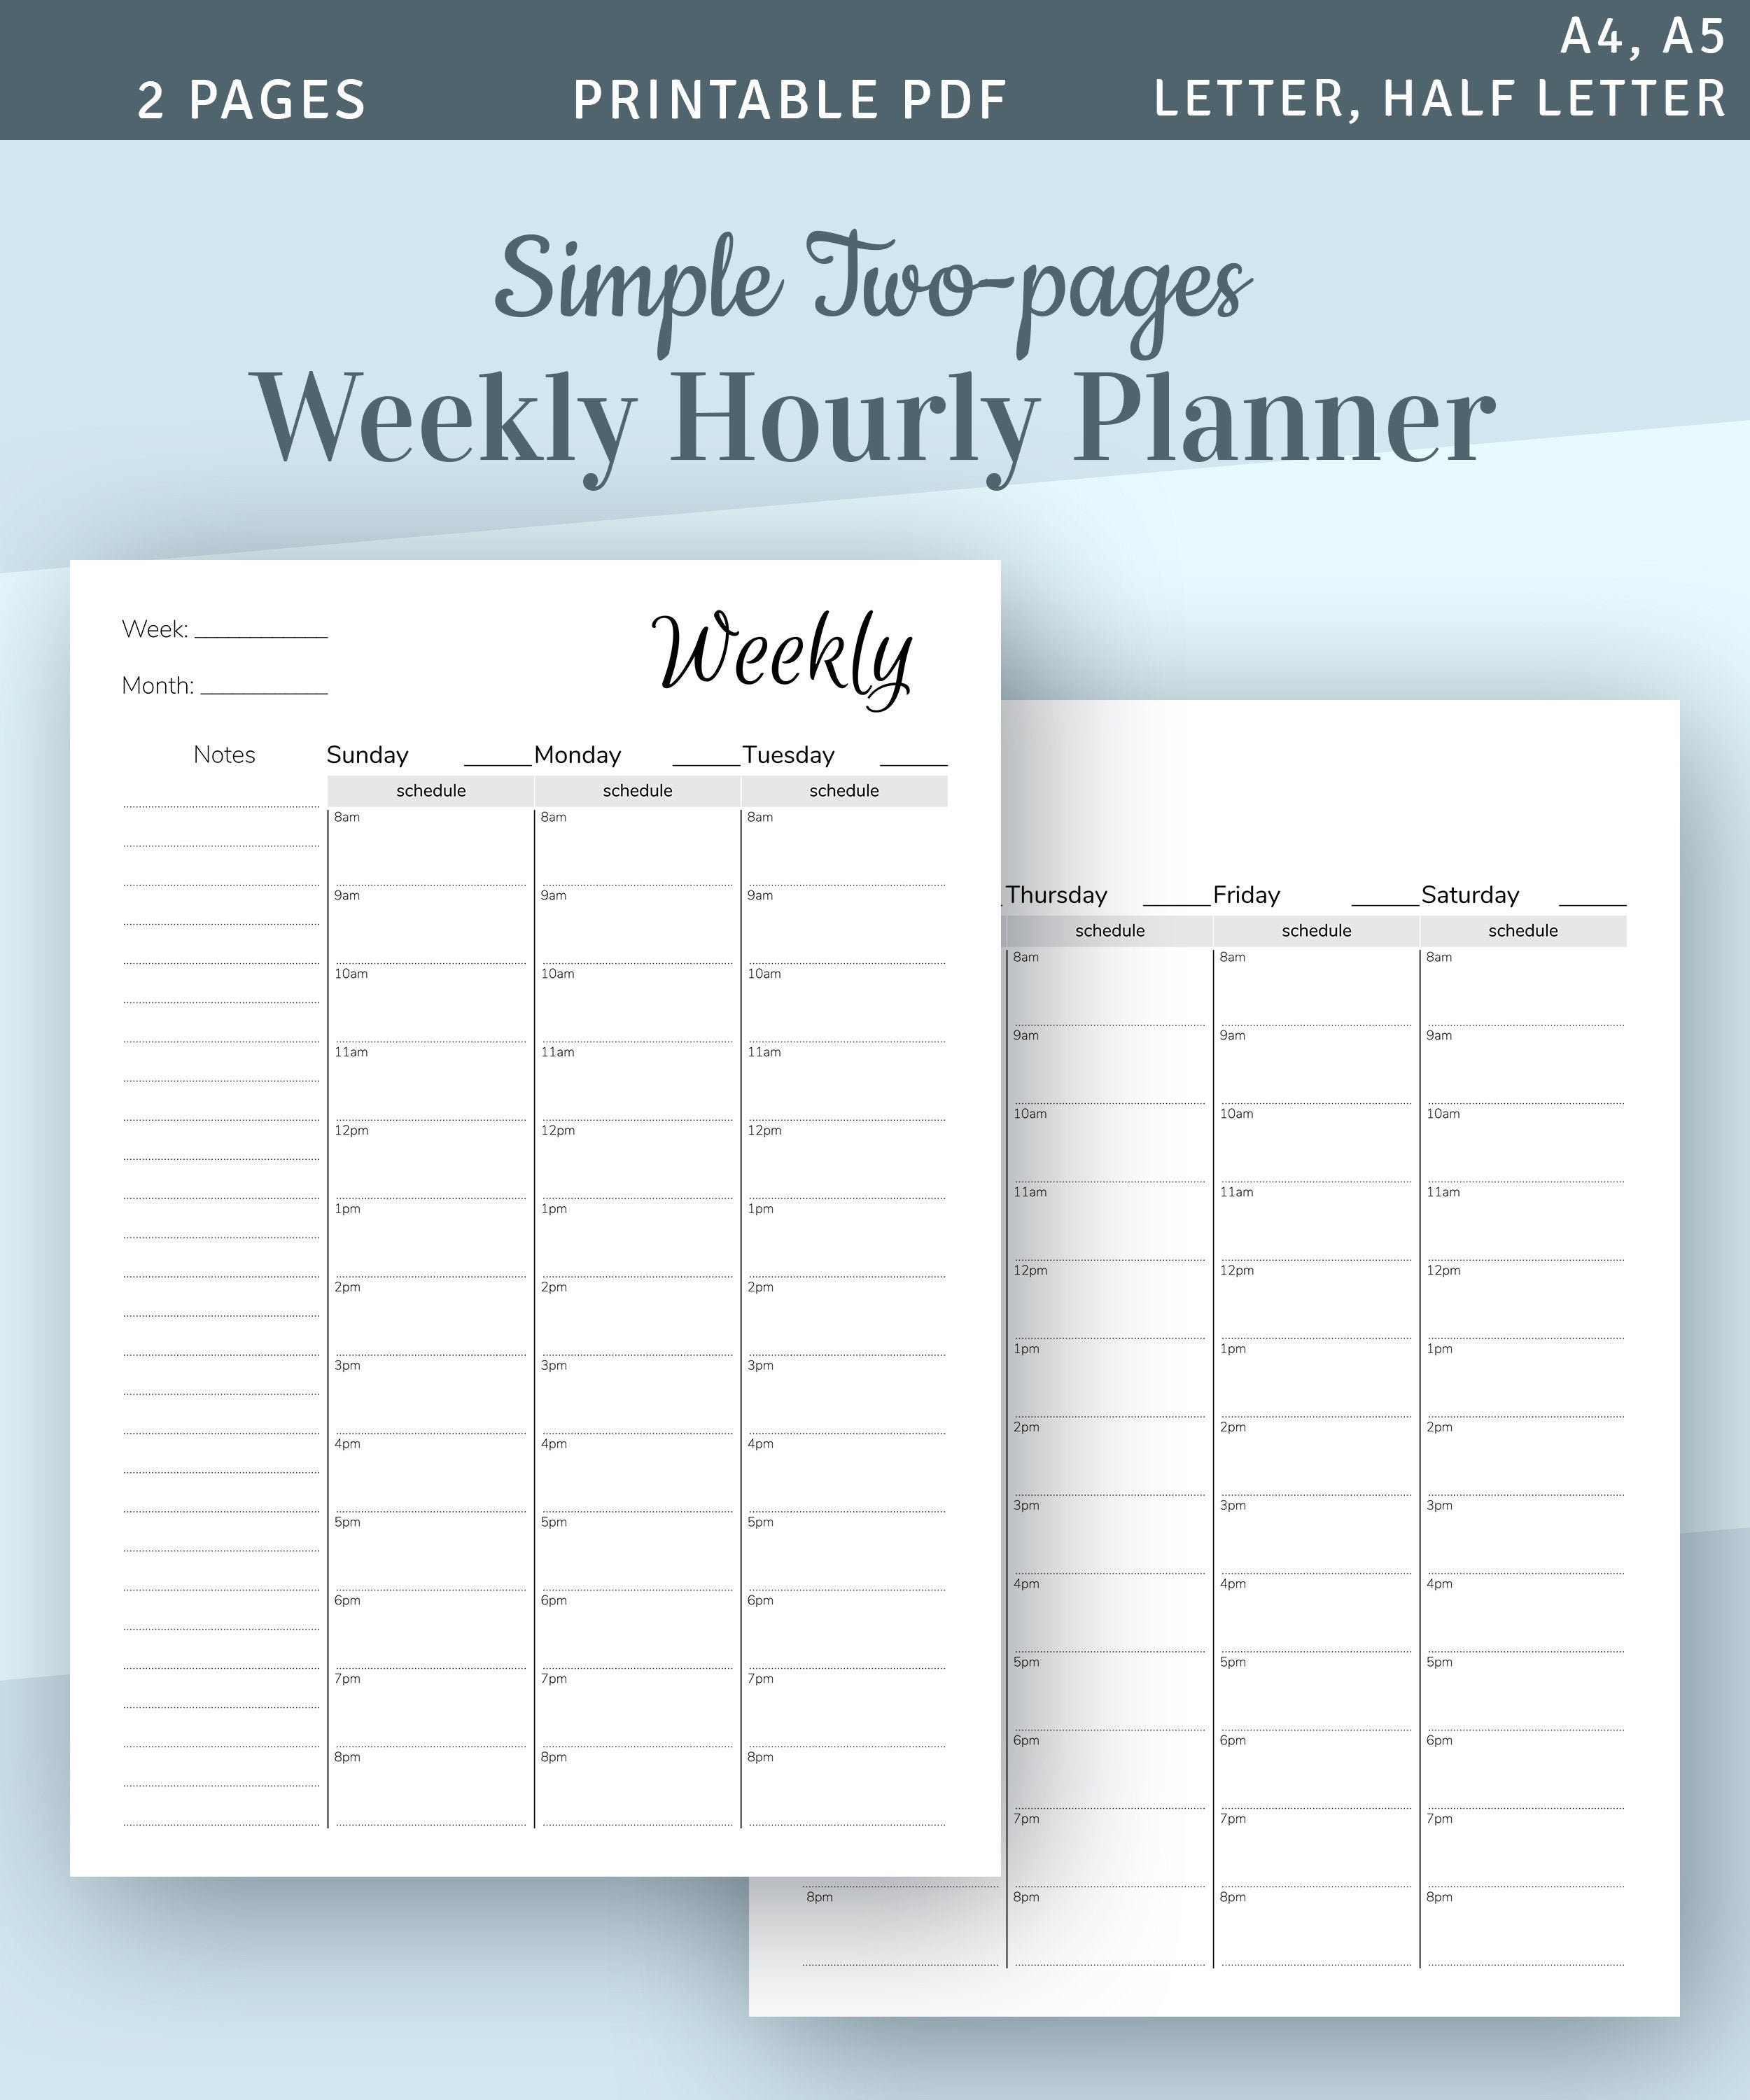 picture about Weekly Hourly Planner Pdf known as Weekly Hourly Planner Template, 2-internet pages Weekly Timetable, 2019 2020 Hourly Planner, Fast Down load Printable PDF